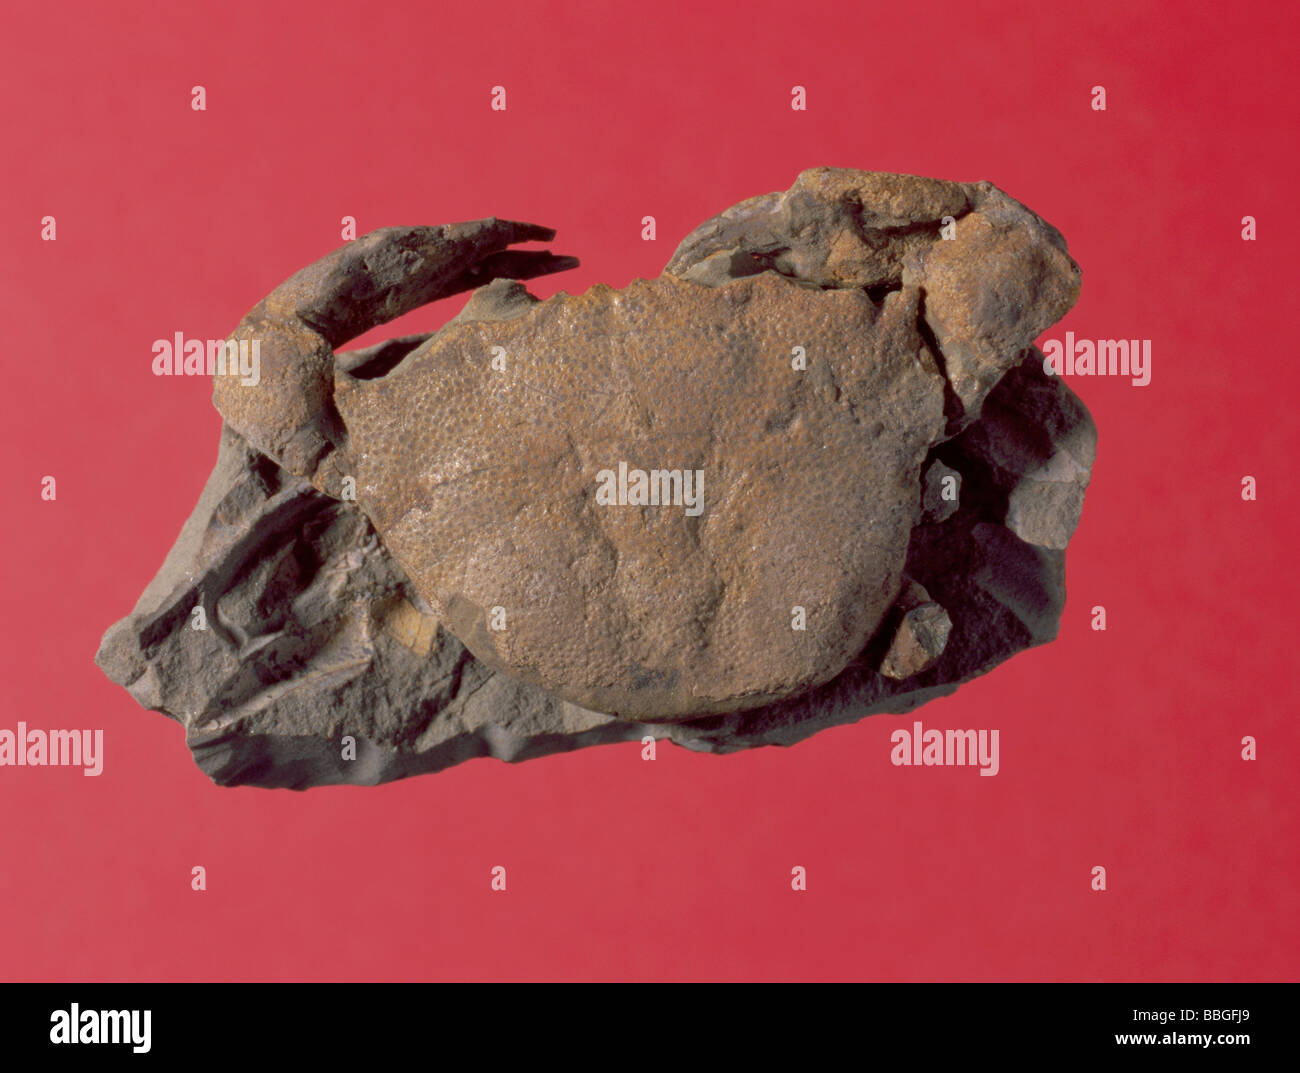 Fossil crab (Coeloma sp.) from Pliocene period, Italy. Length 65mm - Stock Image